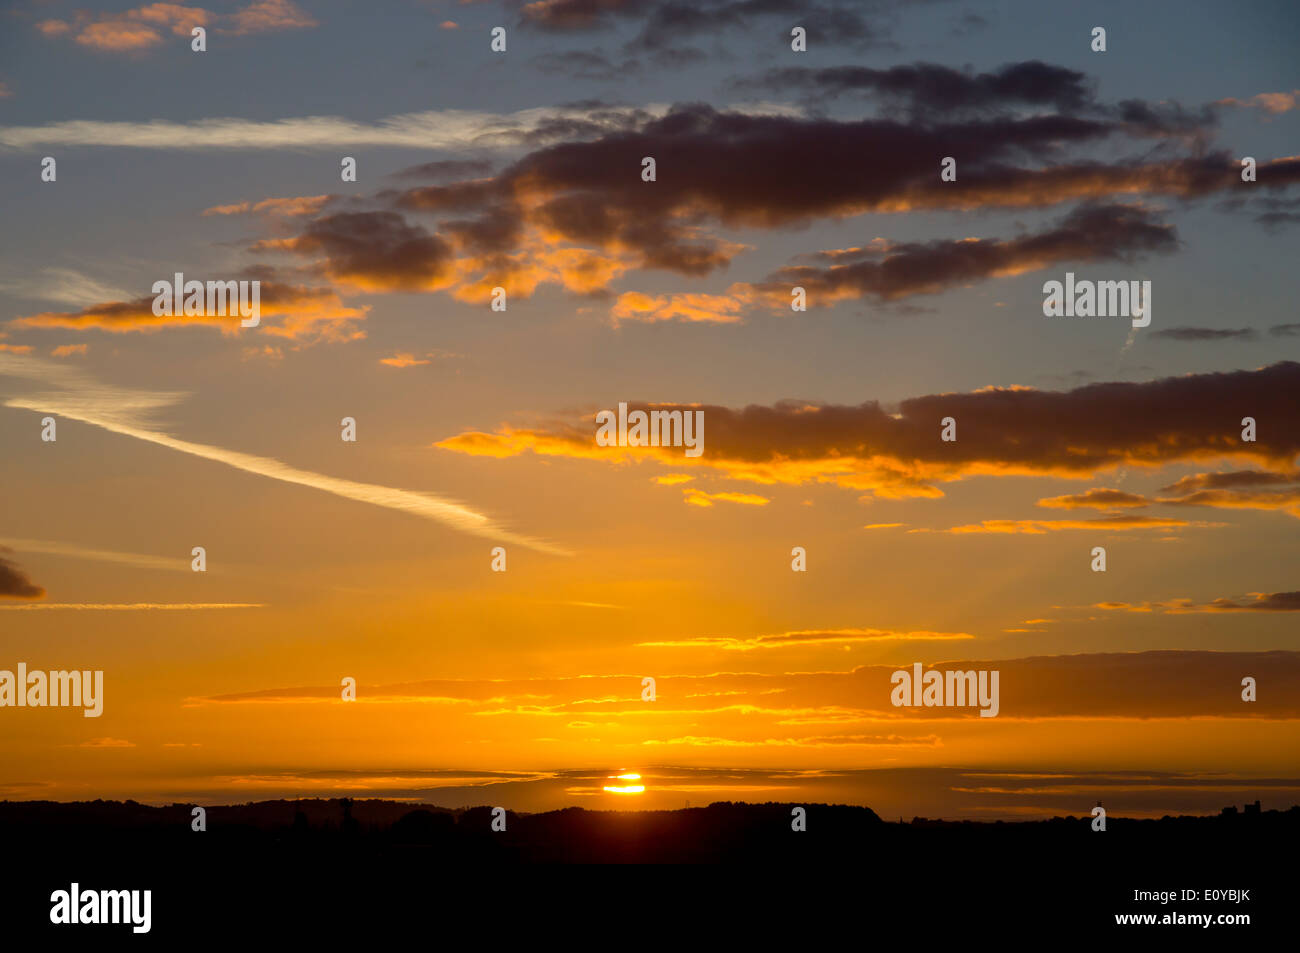 Europe, uk, sunset, uk - Stock Image